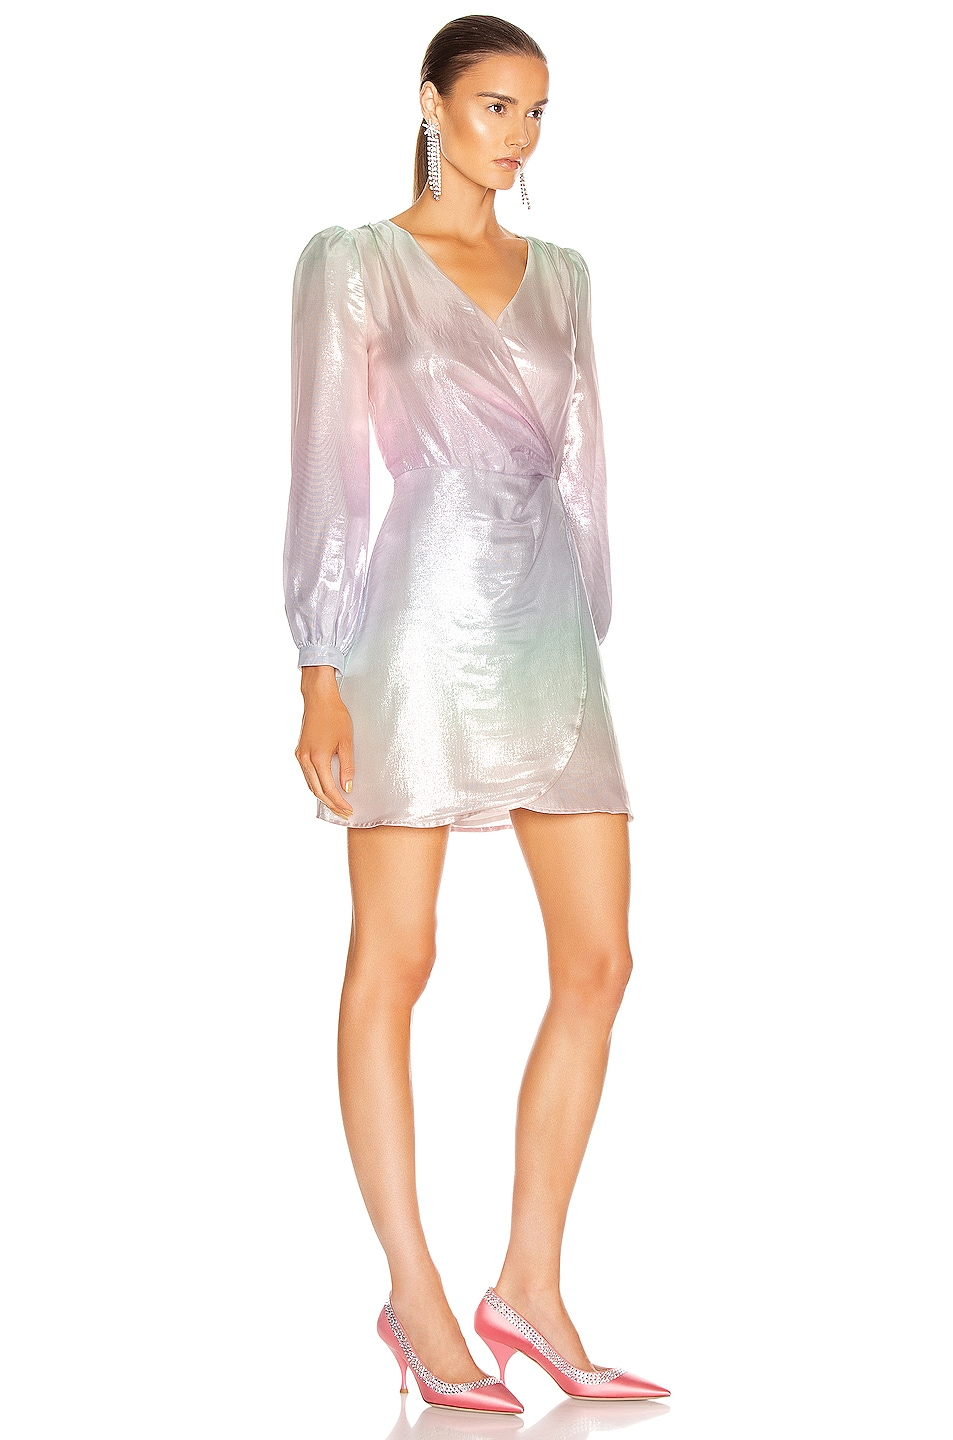 Image 2 of Olivia Rubin Meg Dress in Pastel Ombre Metallic